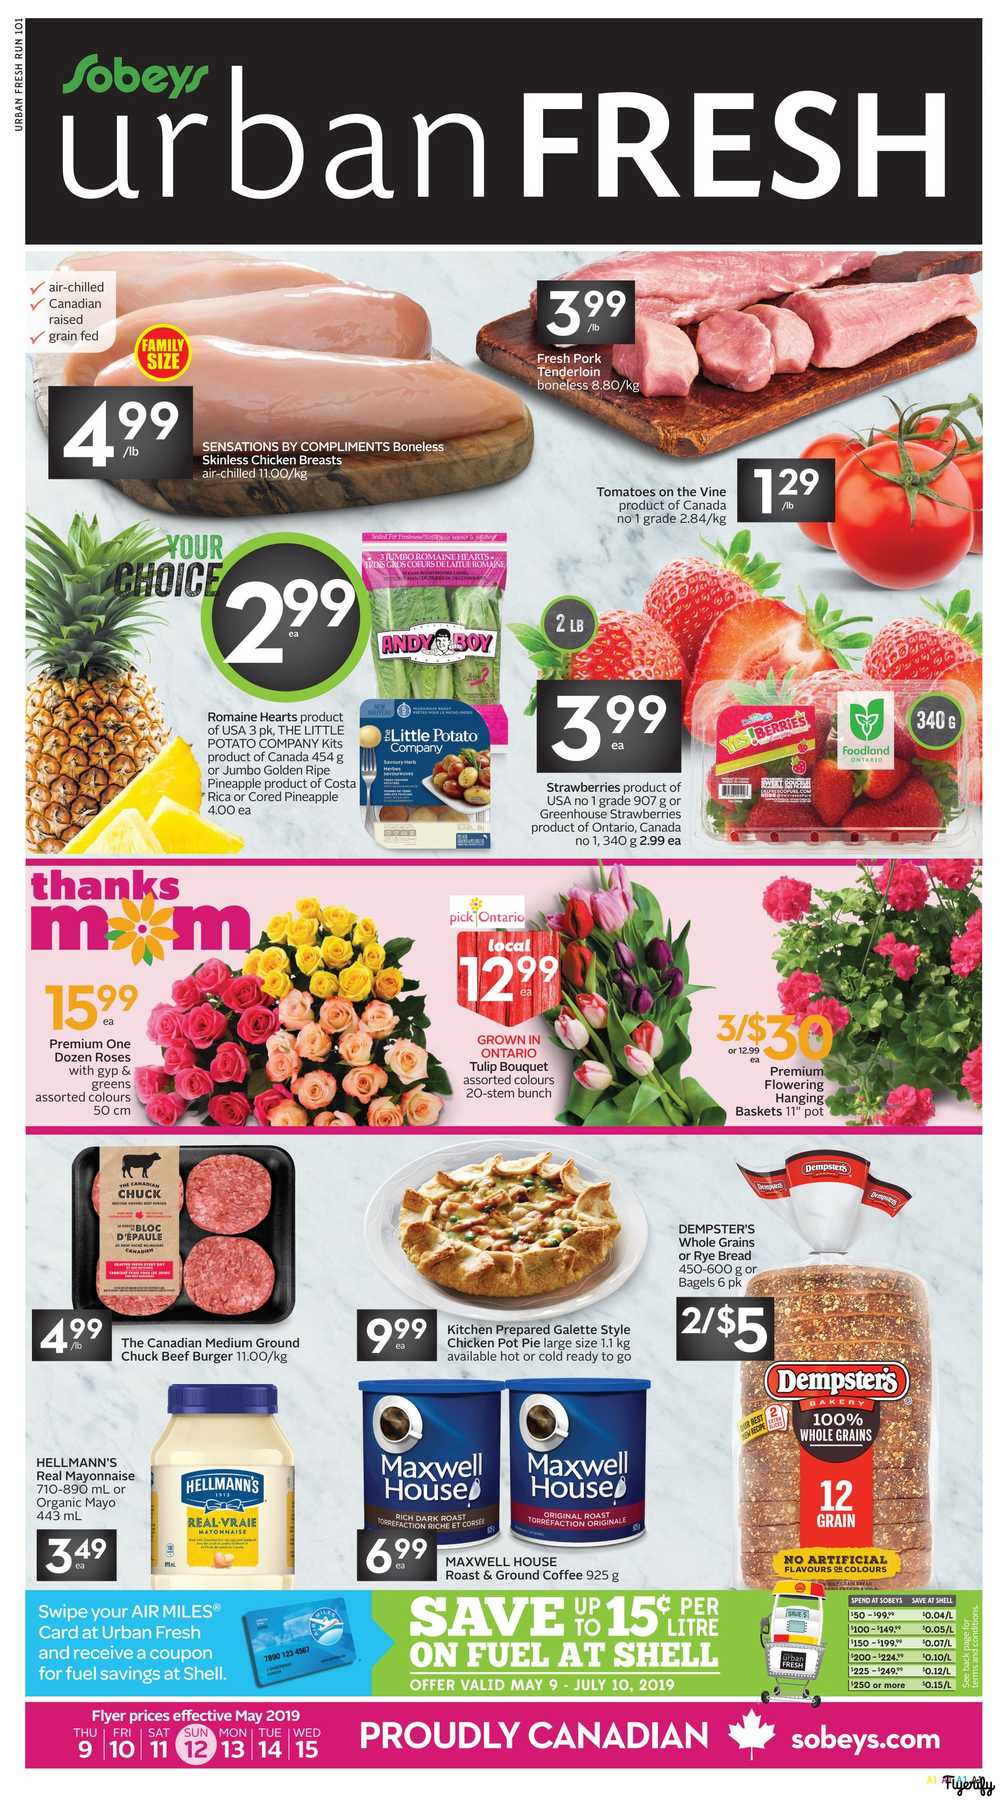 Sobeys Urban Fresh Flyer May 9 to 15